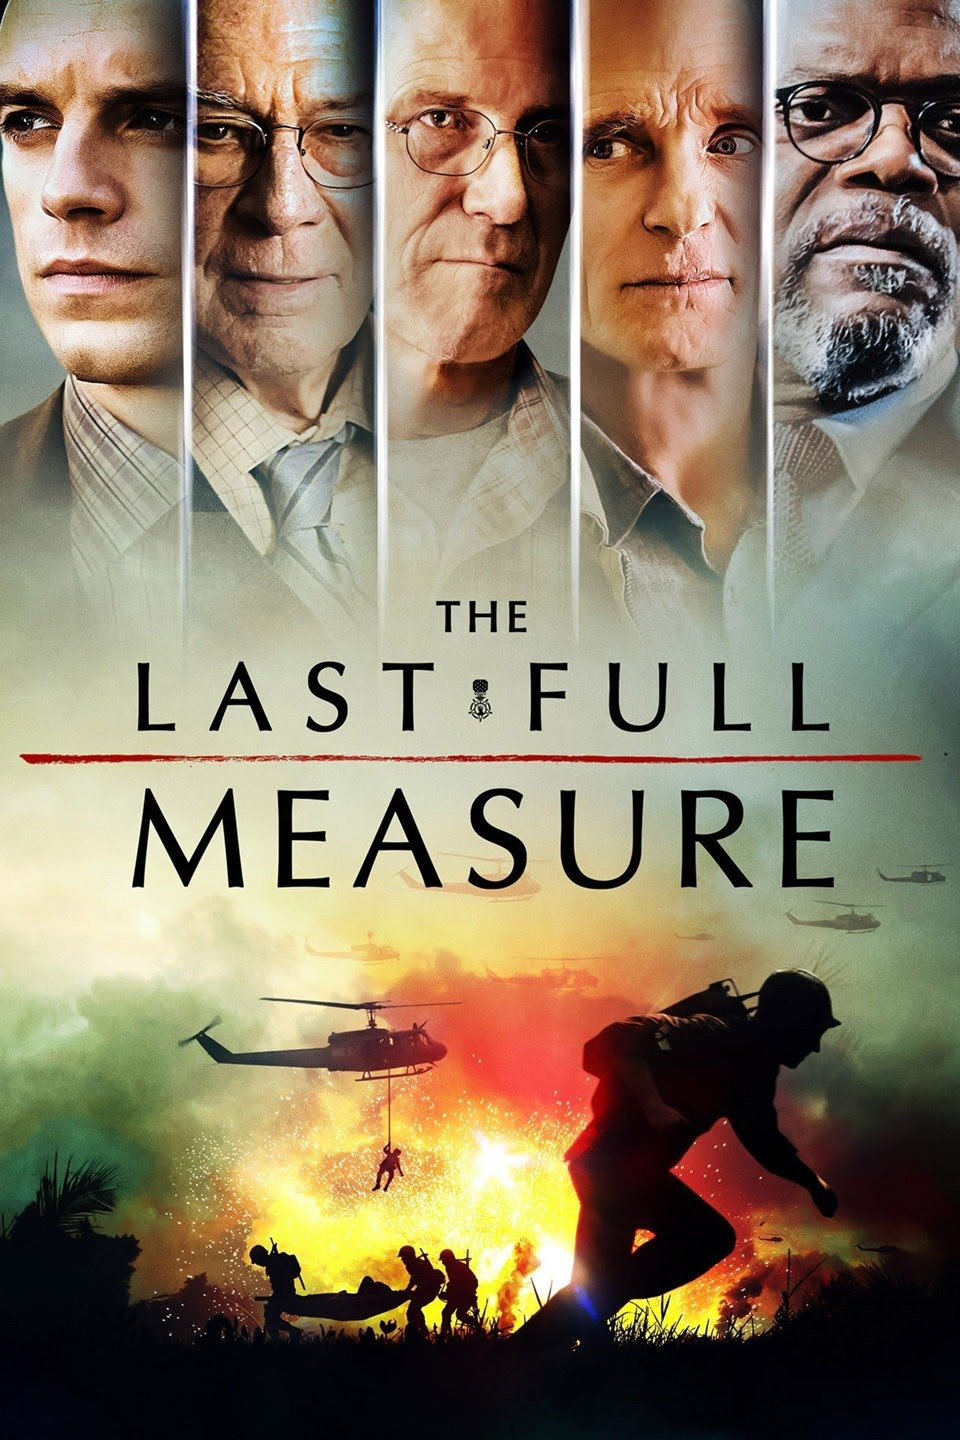 The Last Full Measure (2019)